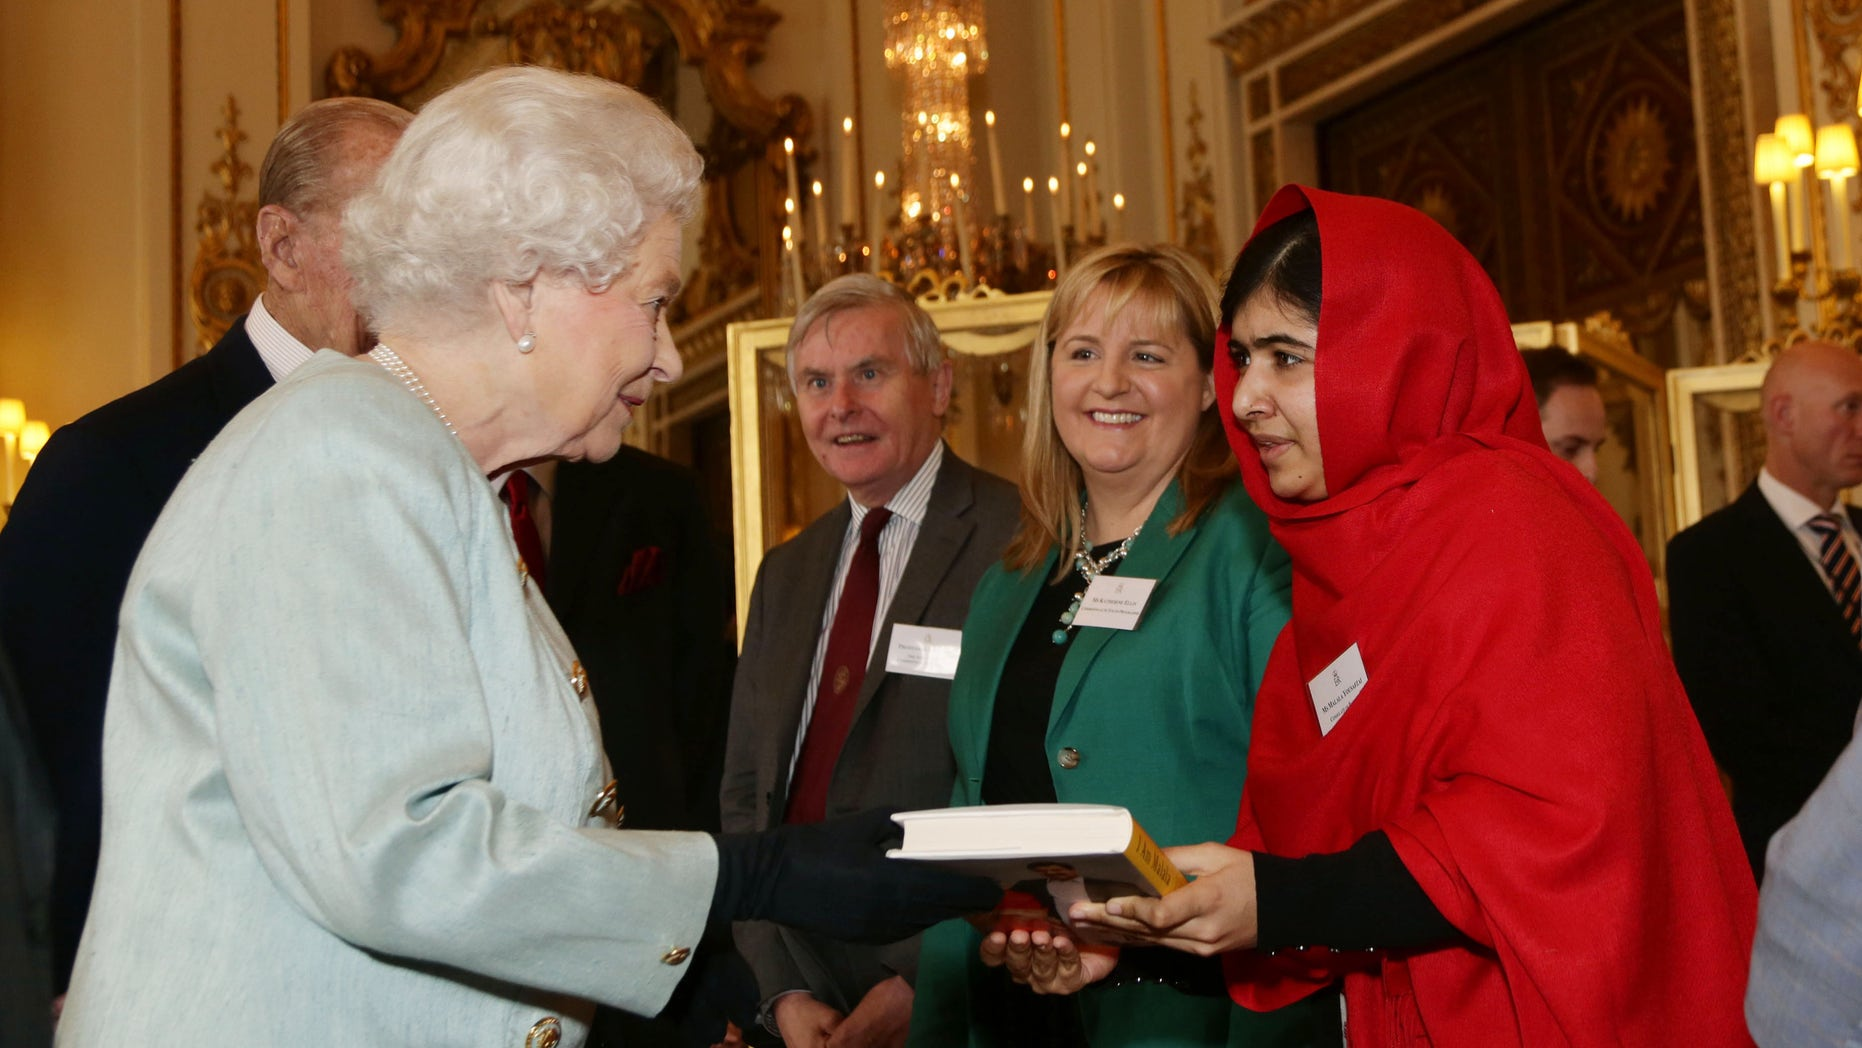 Oct. 18, 2013 - Malala Yousafzai gives a copy of her book to Britain's Queen Elizabeth II during a reception for youth, education and the Commonwealth at Buckingham Palace, London.